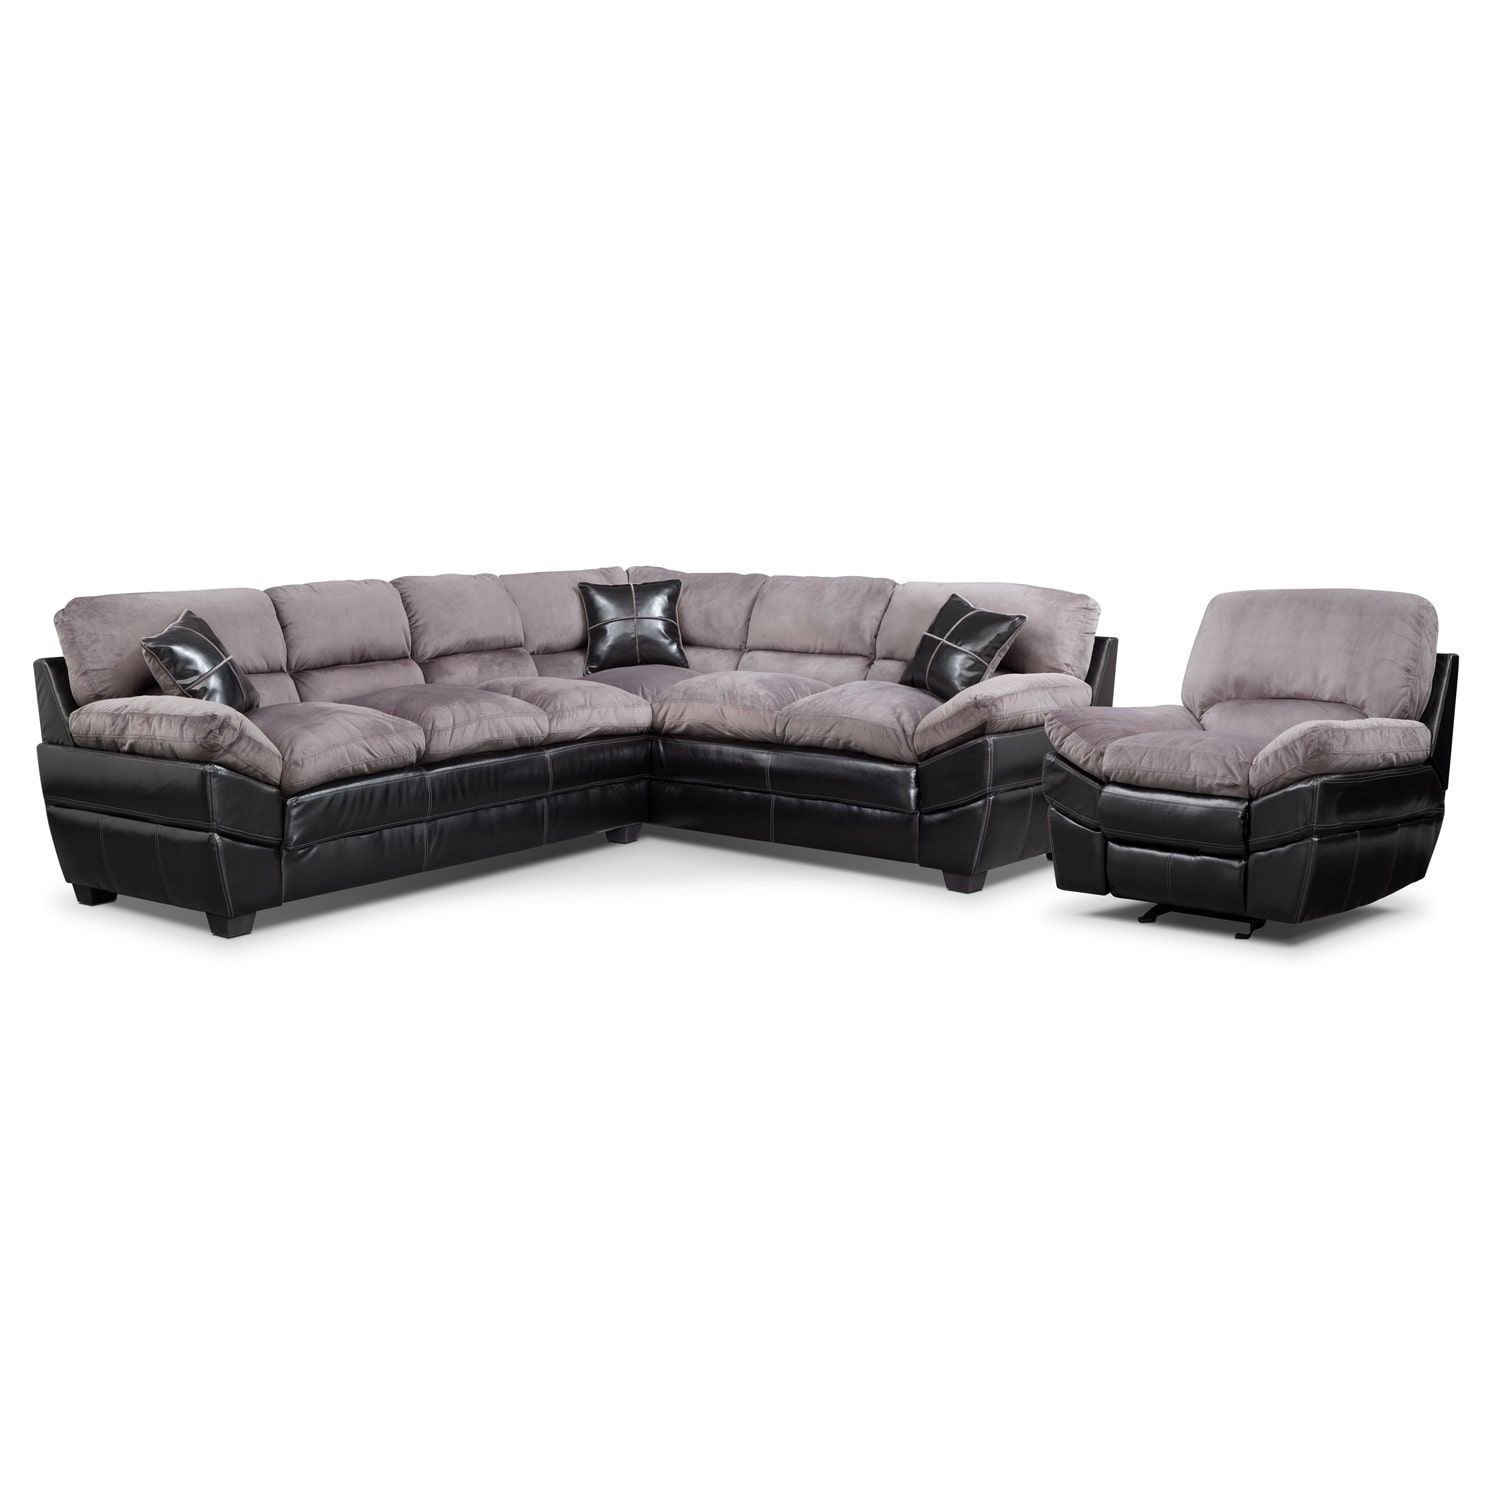 Chandler Gray II 2 Pc. Sectional and Glider Recliner